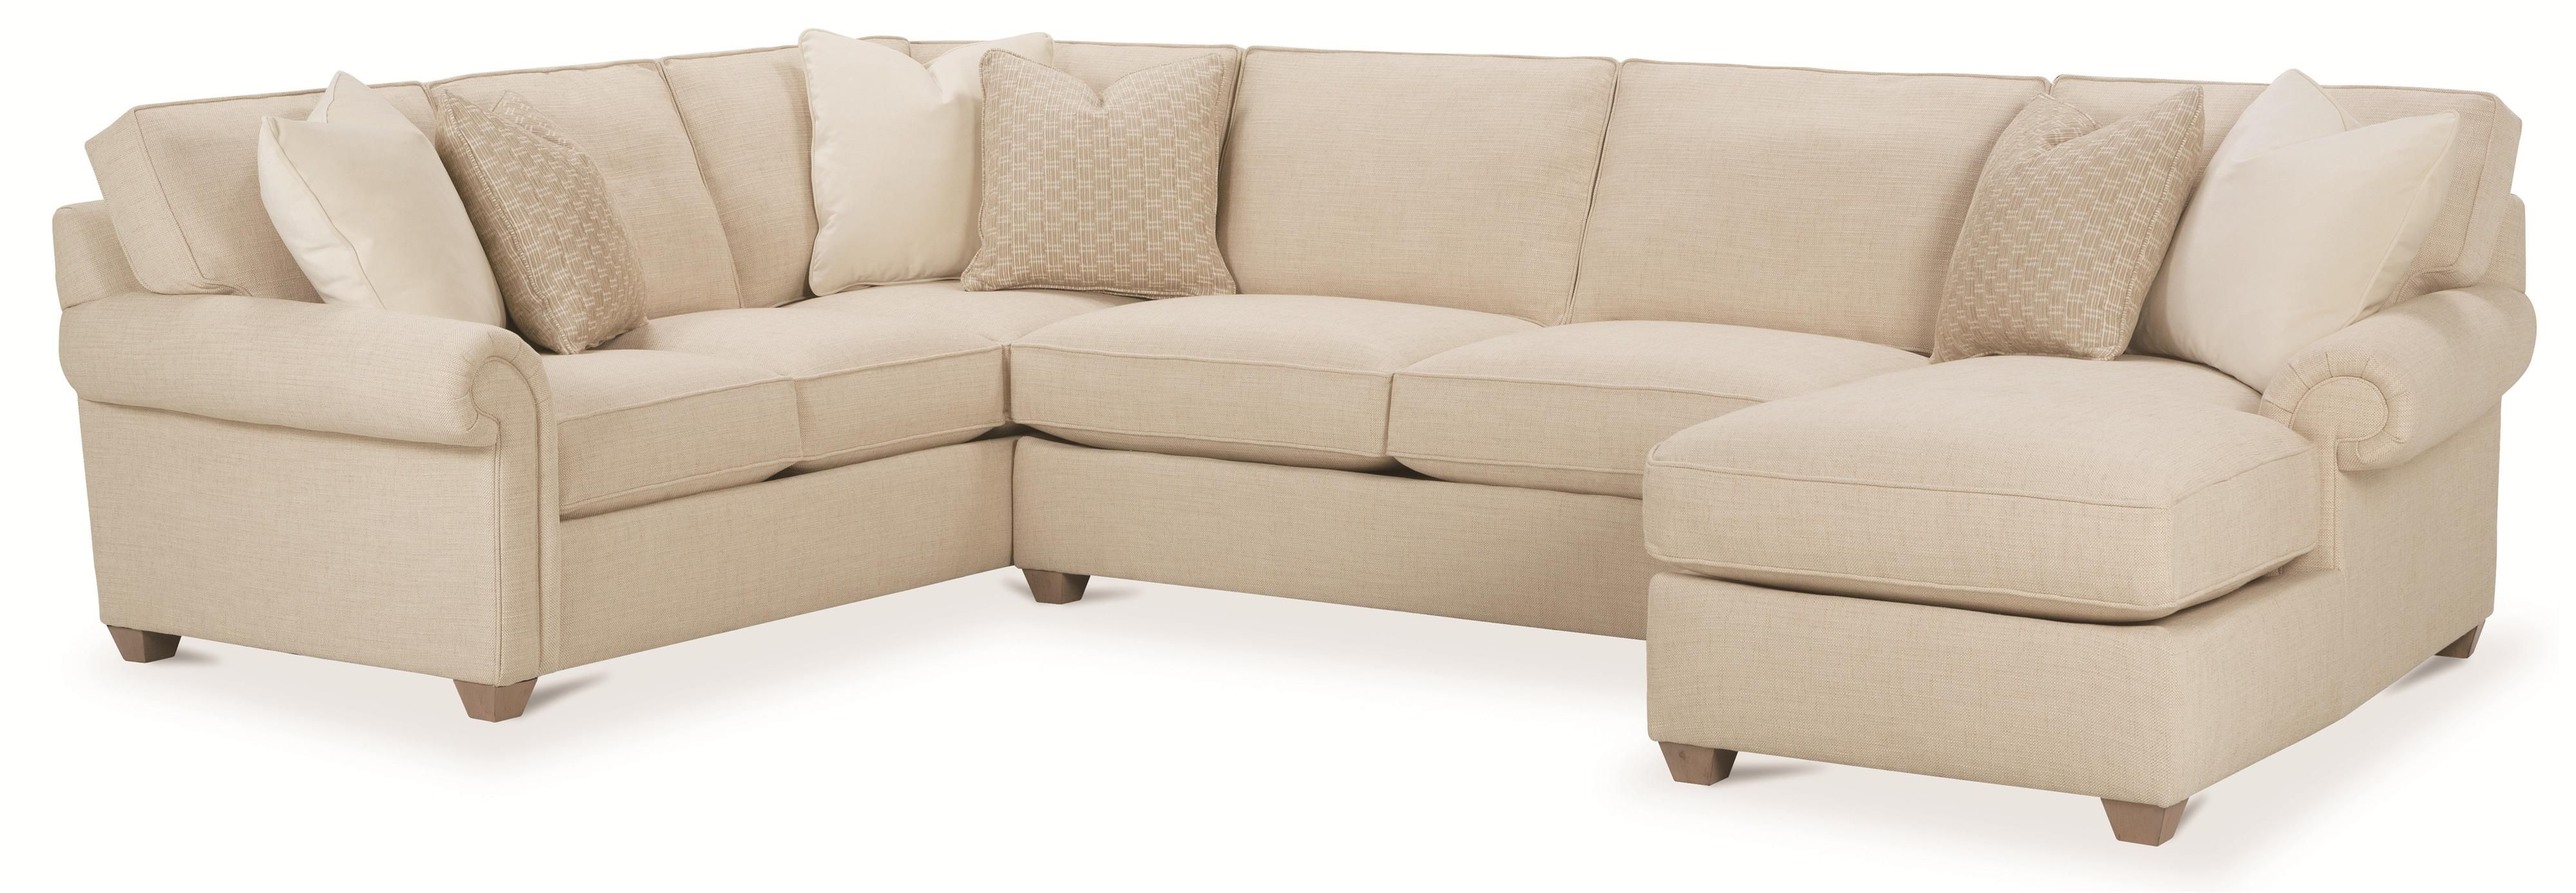 Best Morgan Traditional Three Piece Sectional Sofa By Rowe 400 x 300